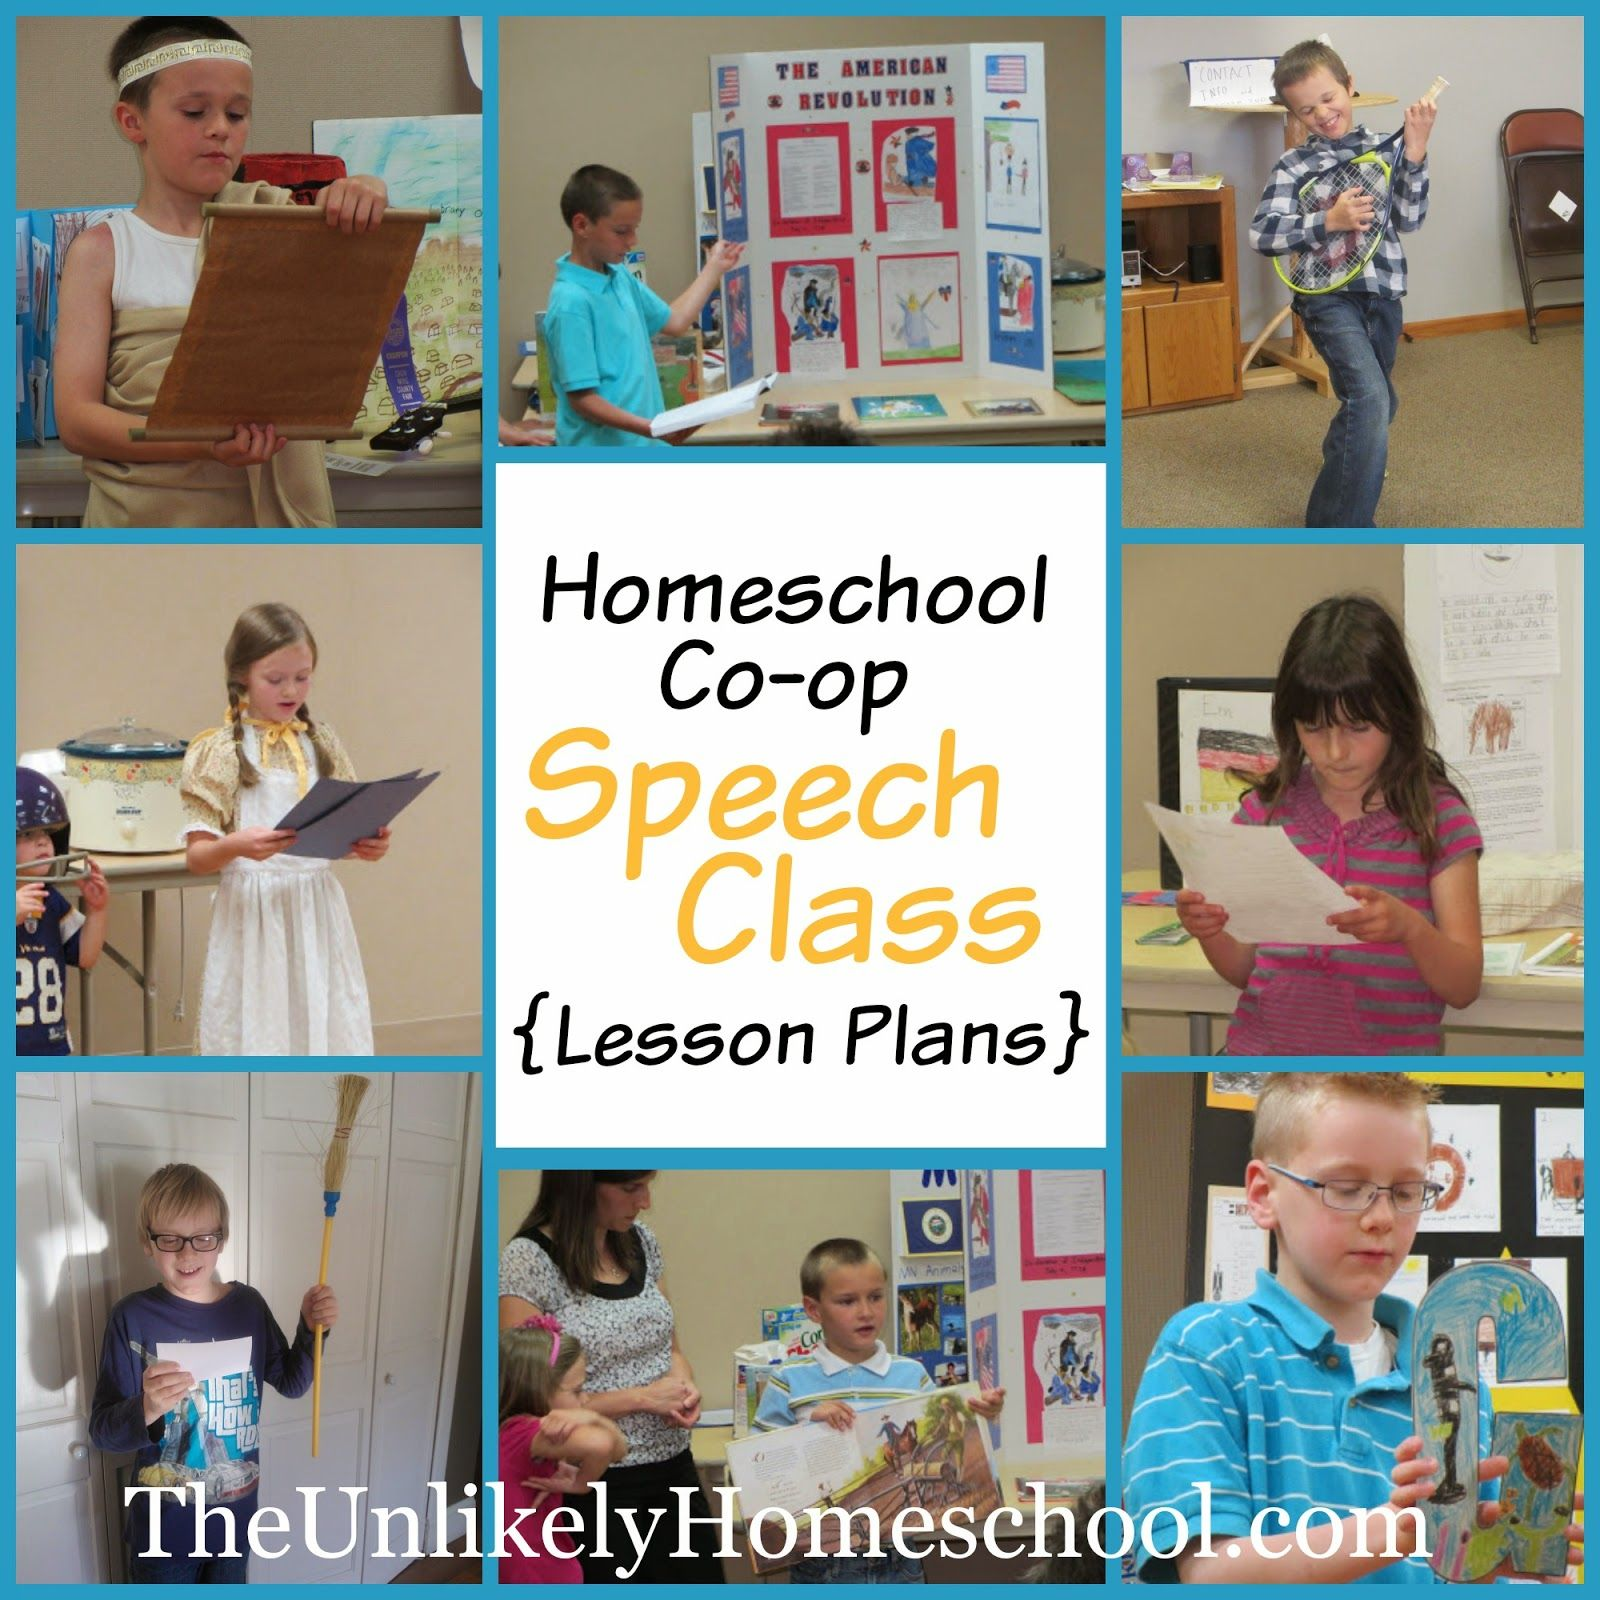 homeschool co op speech class lesson plans the unlikely homeschool co op speech class lesson plans the unlikely homeschool